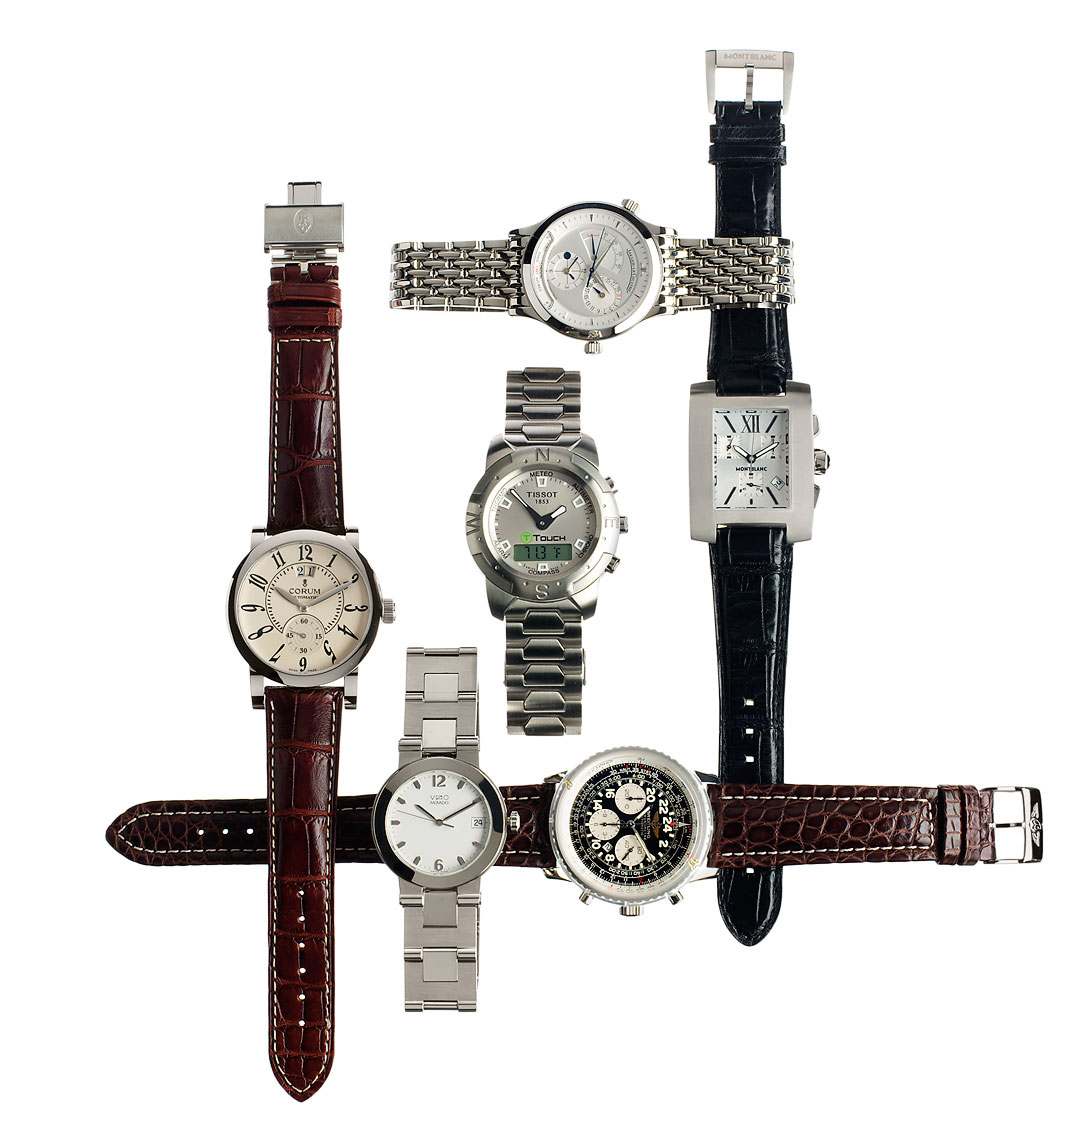 Jewelry Still Life, Luxury Designer Watches